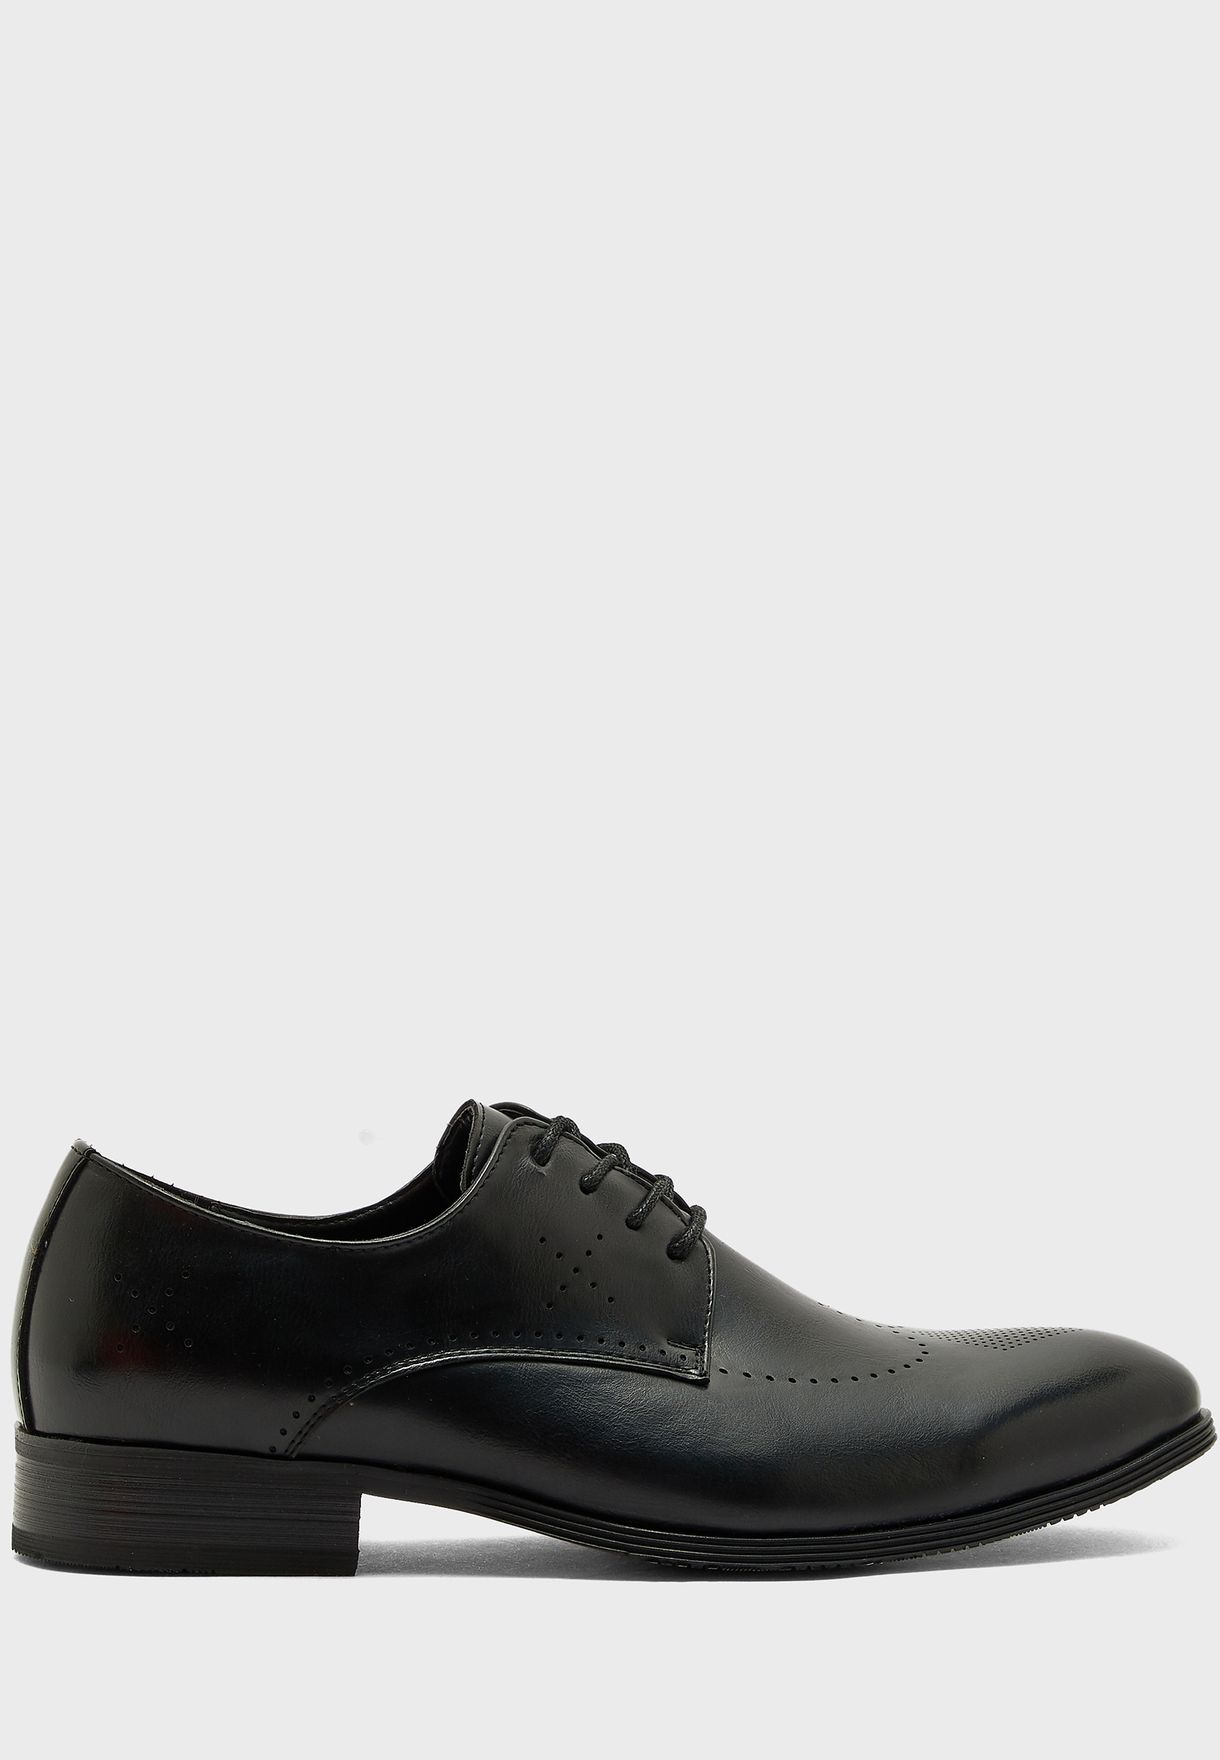 Classic Formal Lace Ups